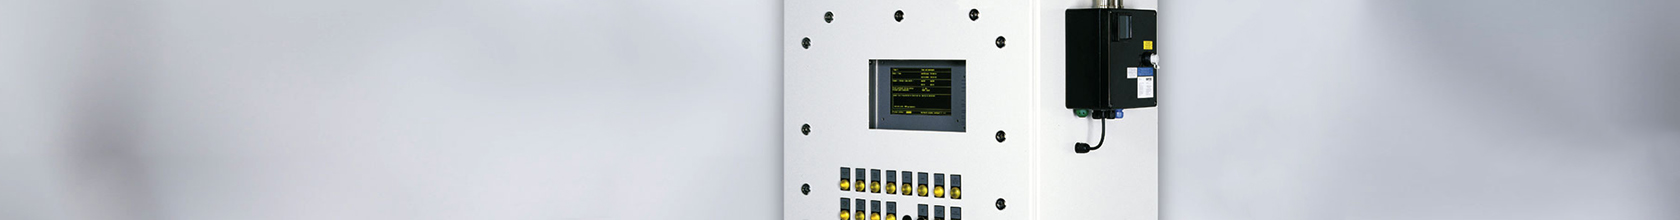 Control and Connection Equipment